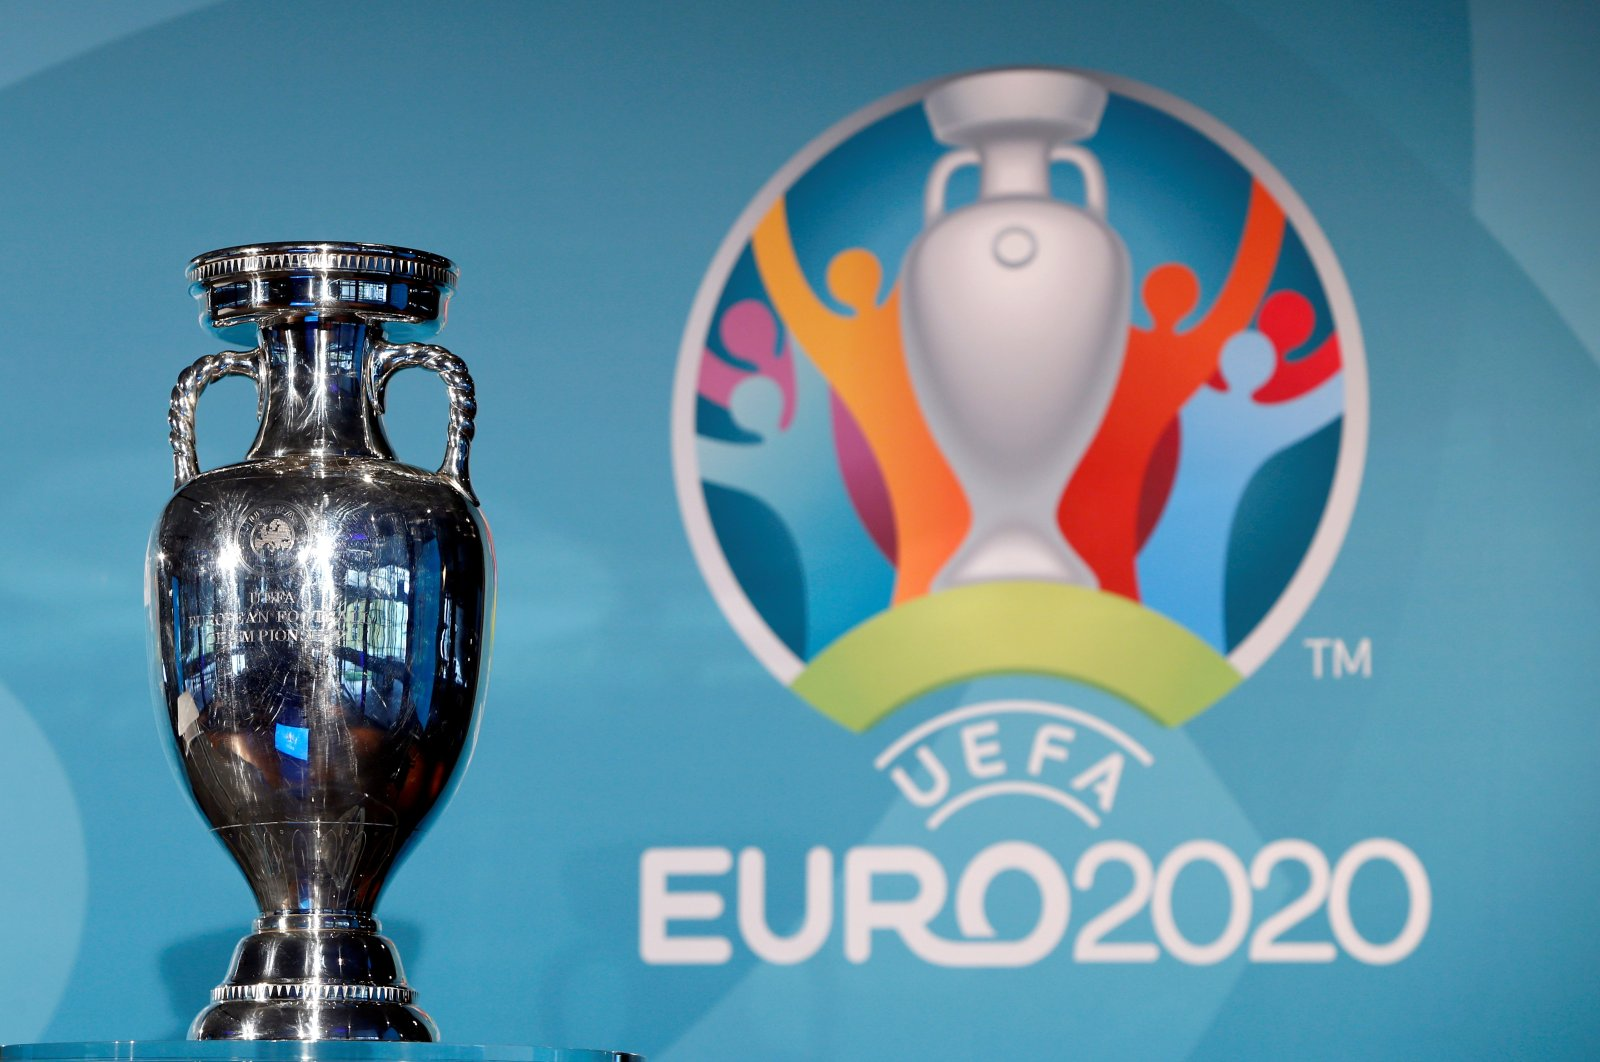 The UEFA Euro trophy is seen during the logo launch, Olympia Park, Munich, Germany, Oct. 27, 2016. (Reuters Photo)